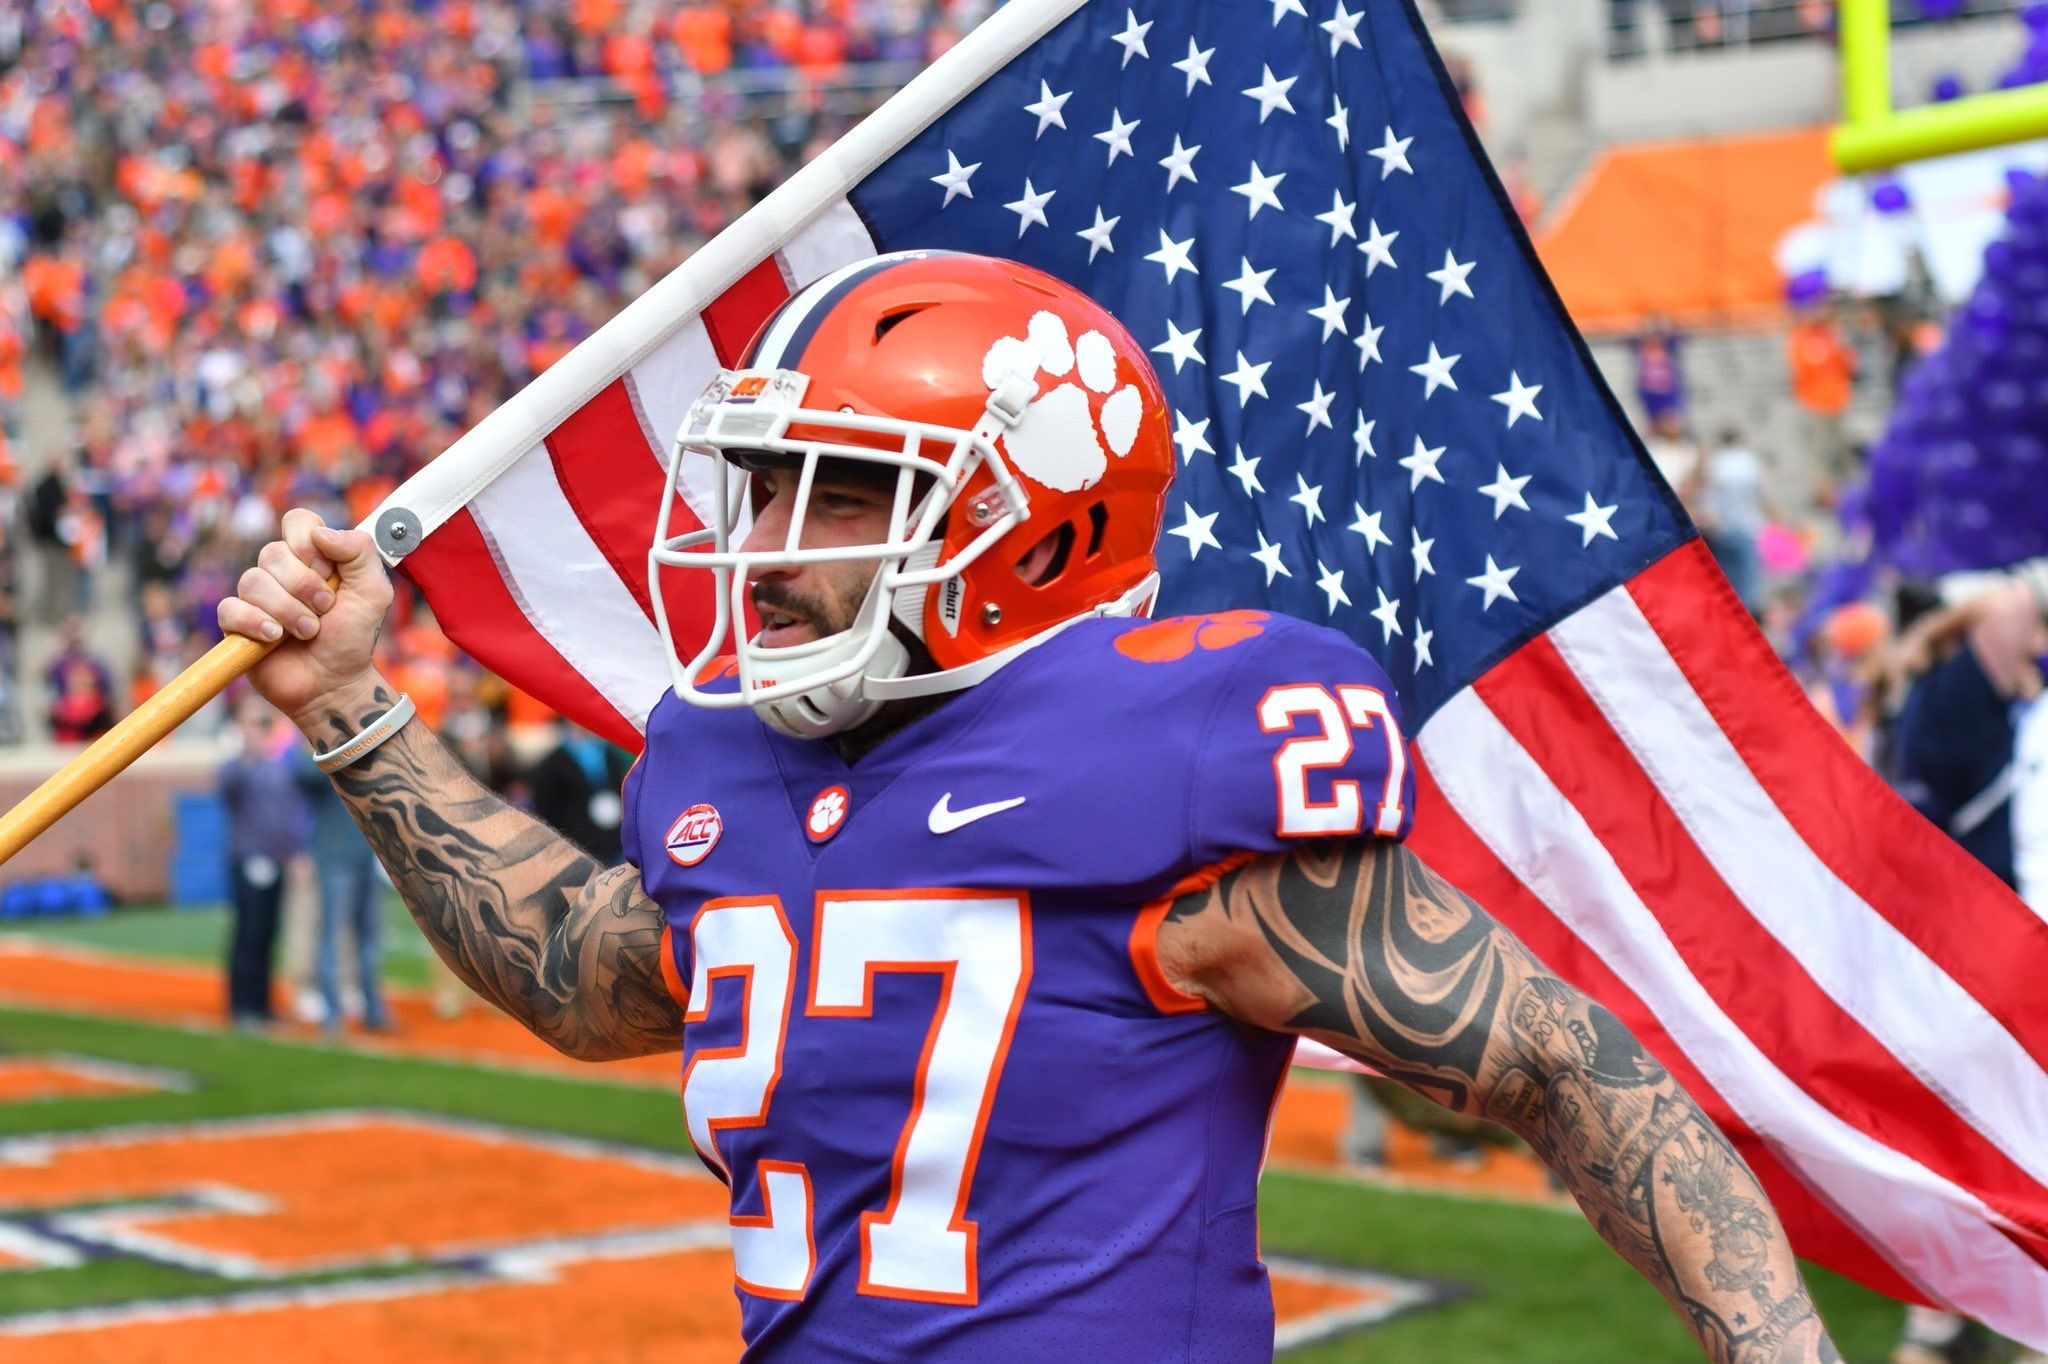 Pin by Mike Price on Clemson Tigers Football helmets